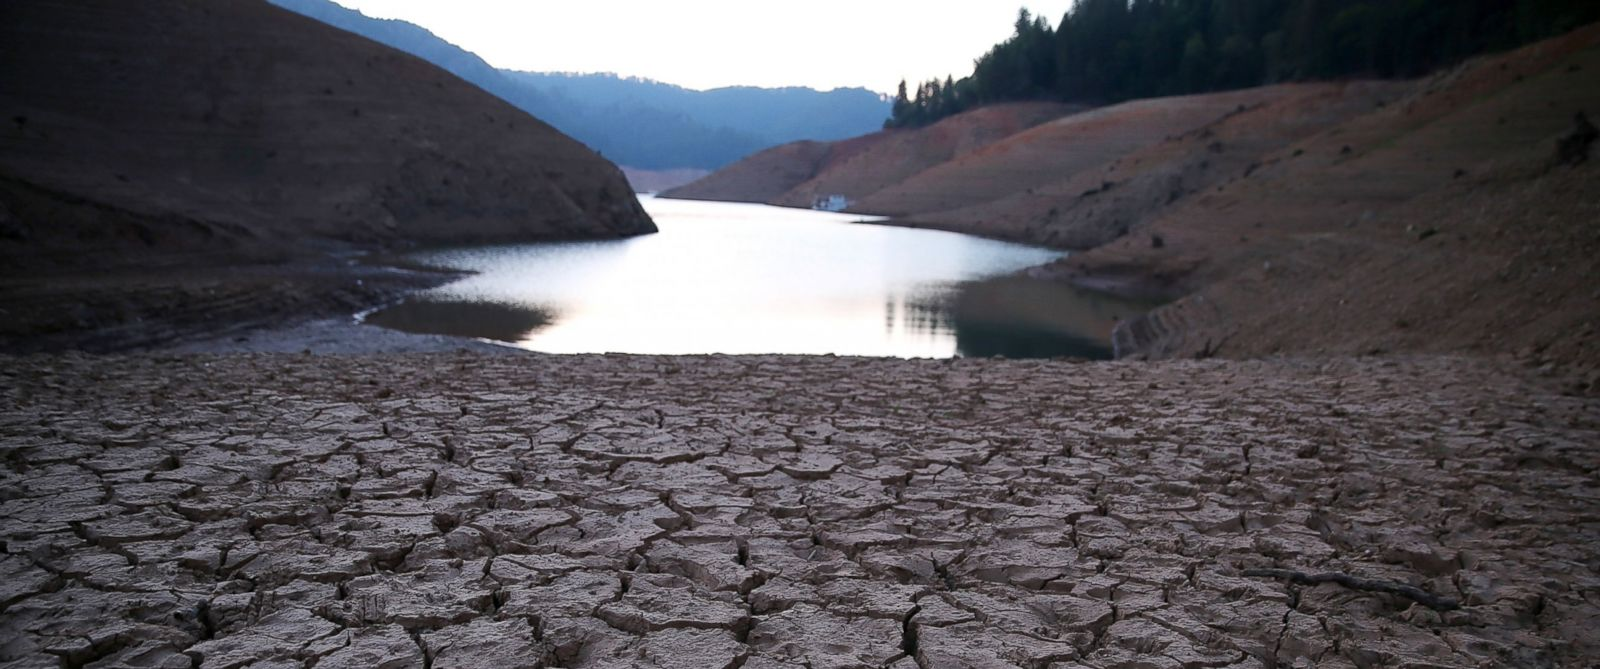 PHOTO: Dry cracked earth is visible on the banks of Shasta Lake at Bailey Cove, August 31, 2014 in Lakehead, California.